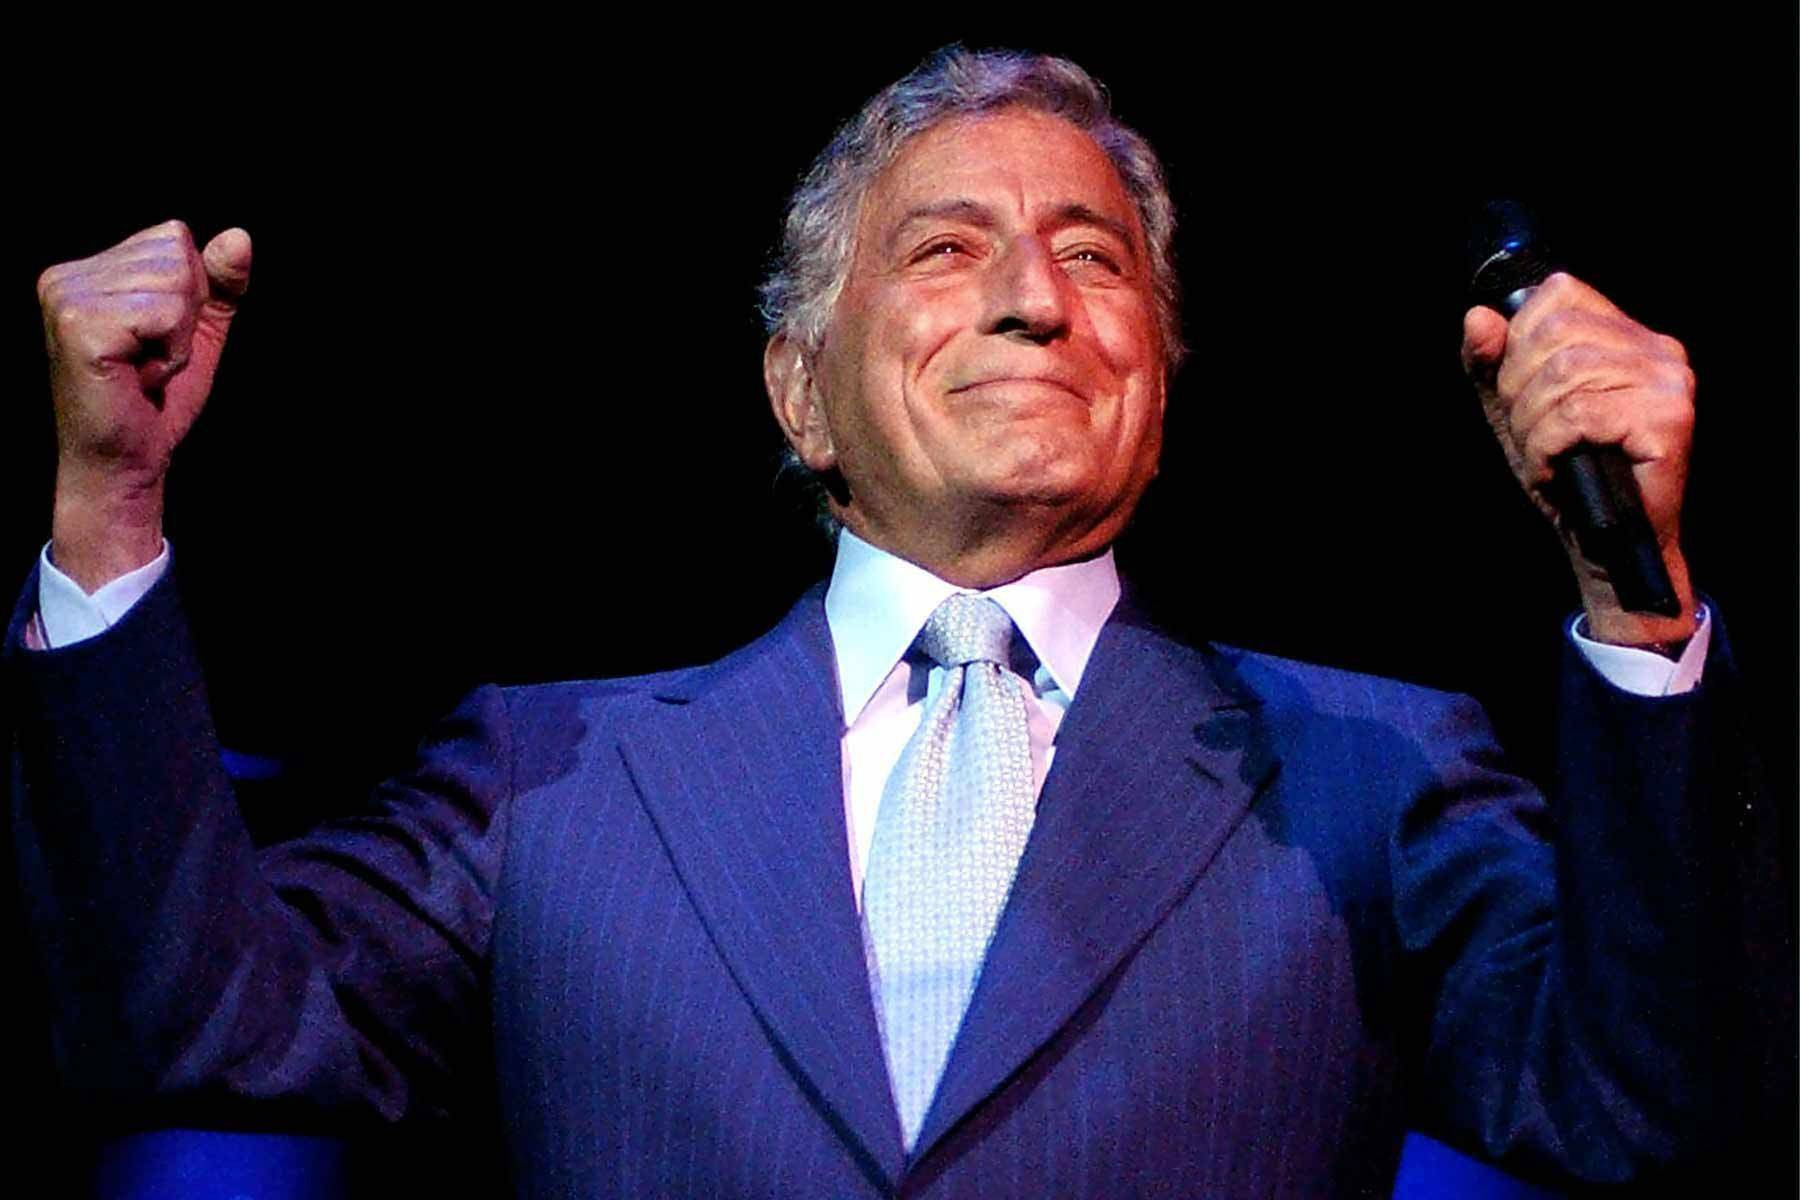 312_1studiobrooke_tonybennett_music_photography_entertainment_02